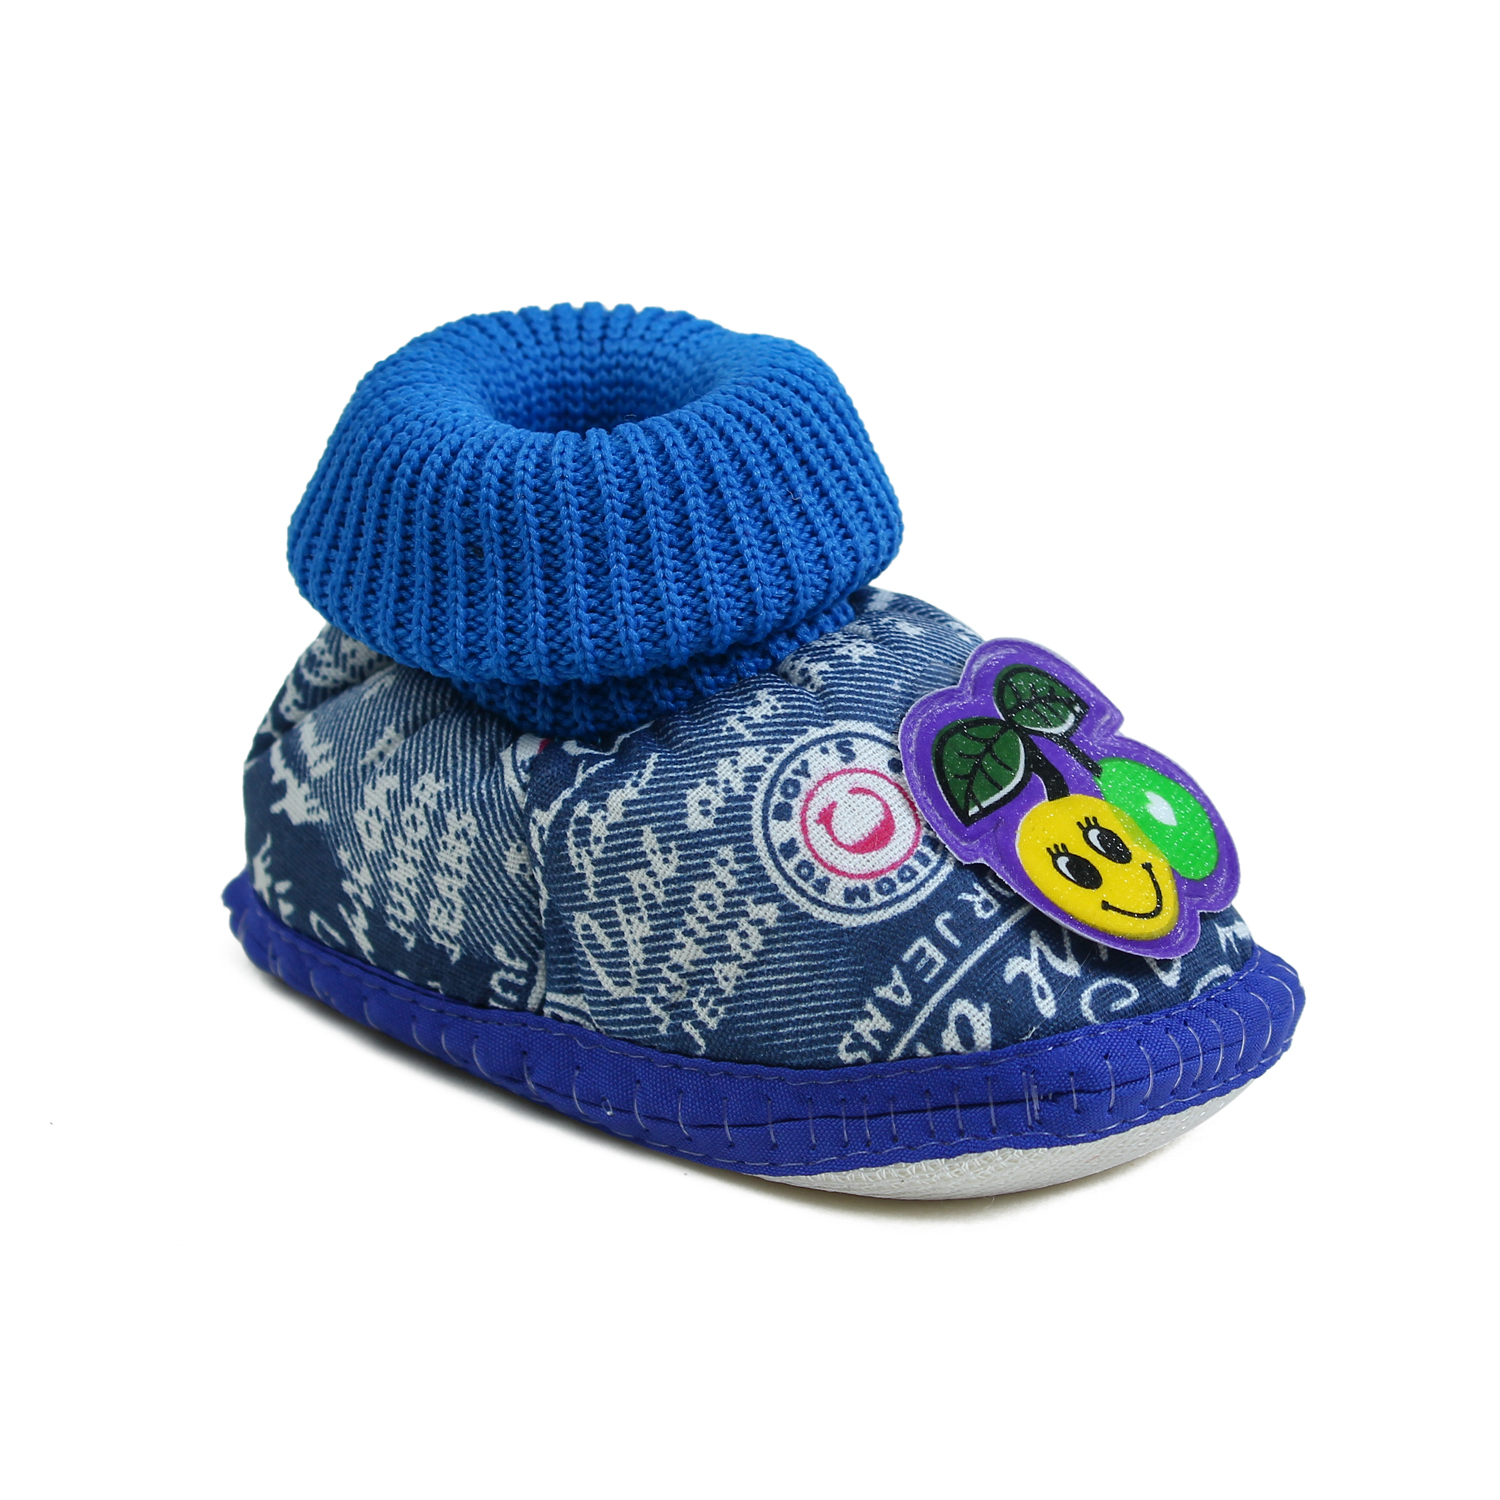 Foot Trends DNM FUR NBB BK RD BL Stylish & Casual Shoes For Kids (0) (Multicolour, 0, 12 PAIR)